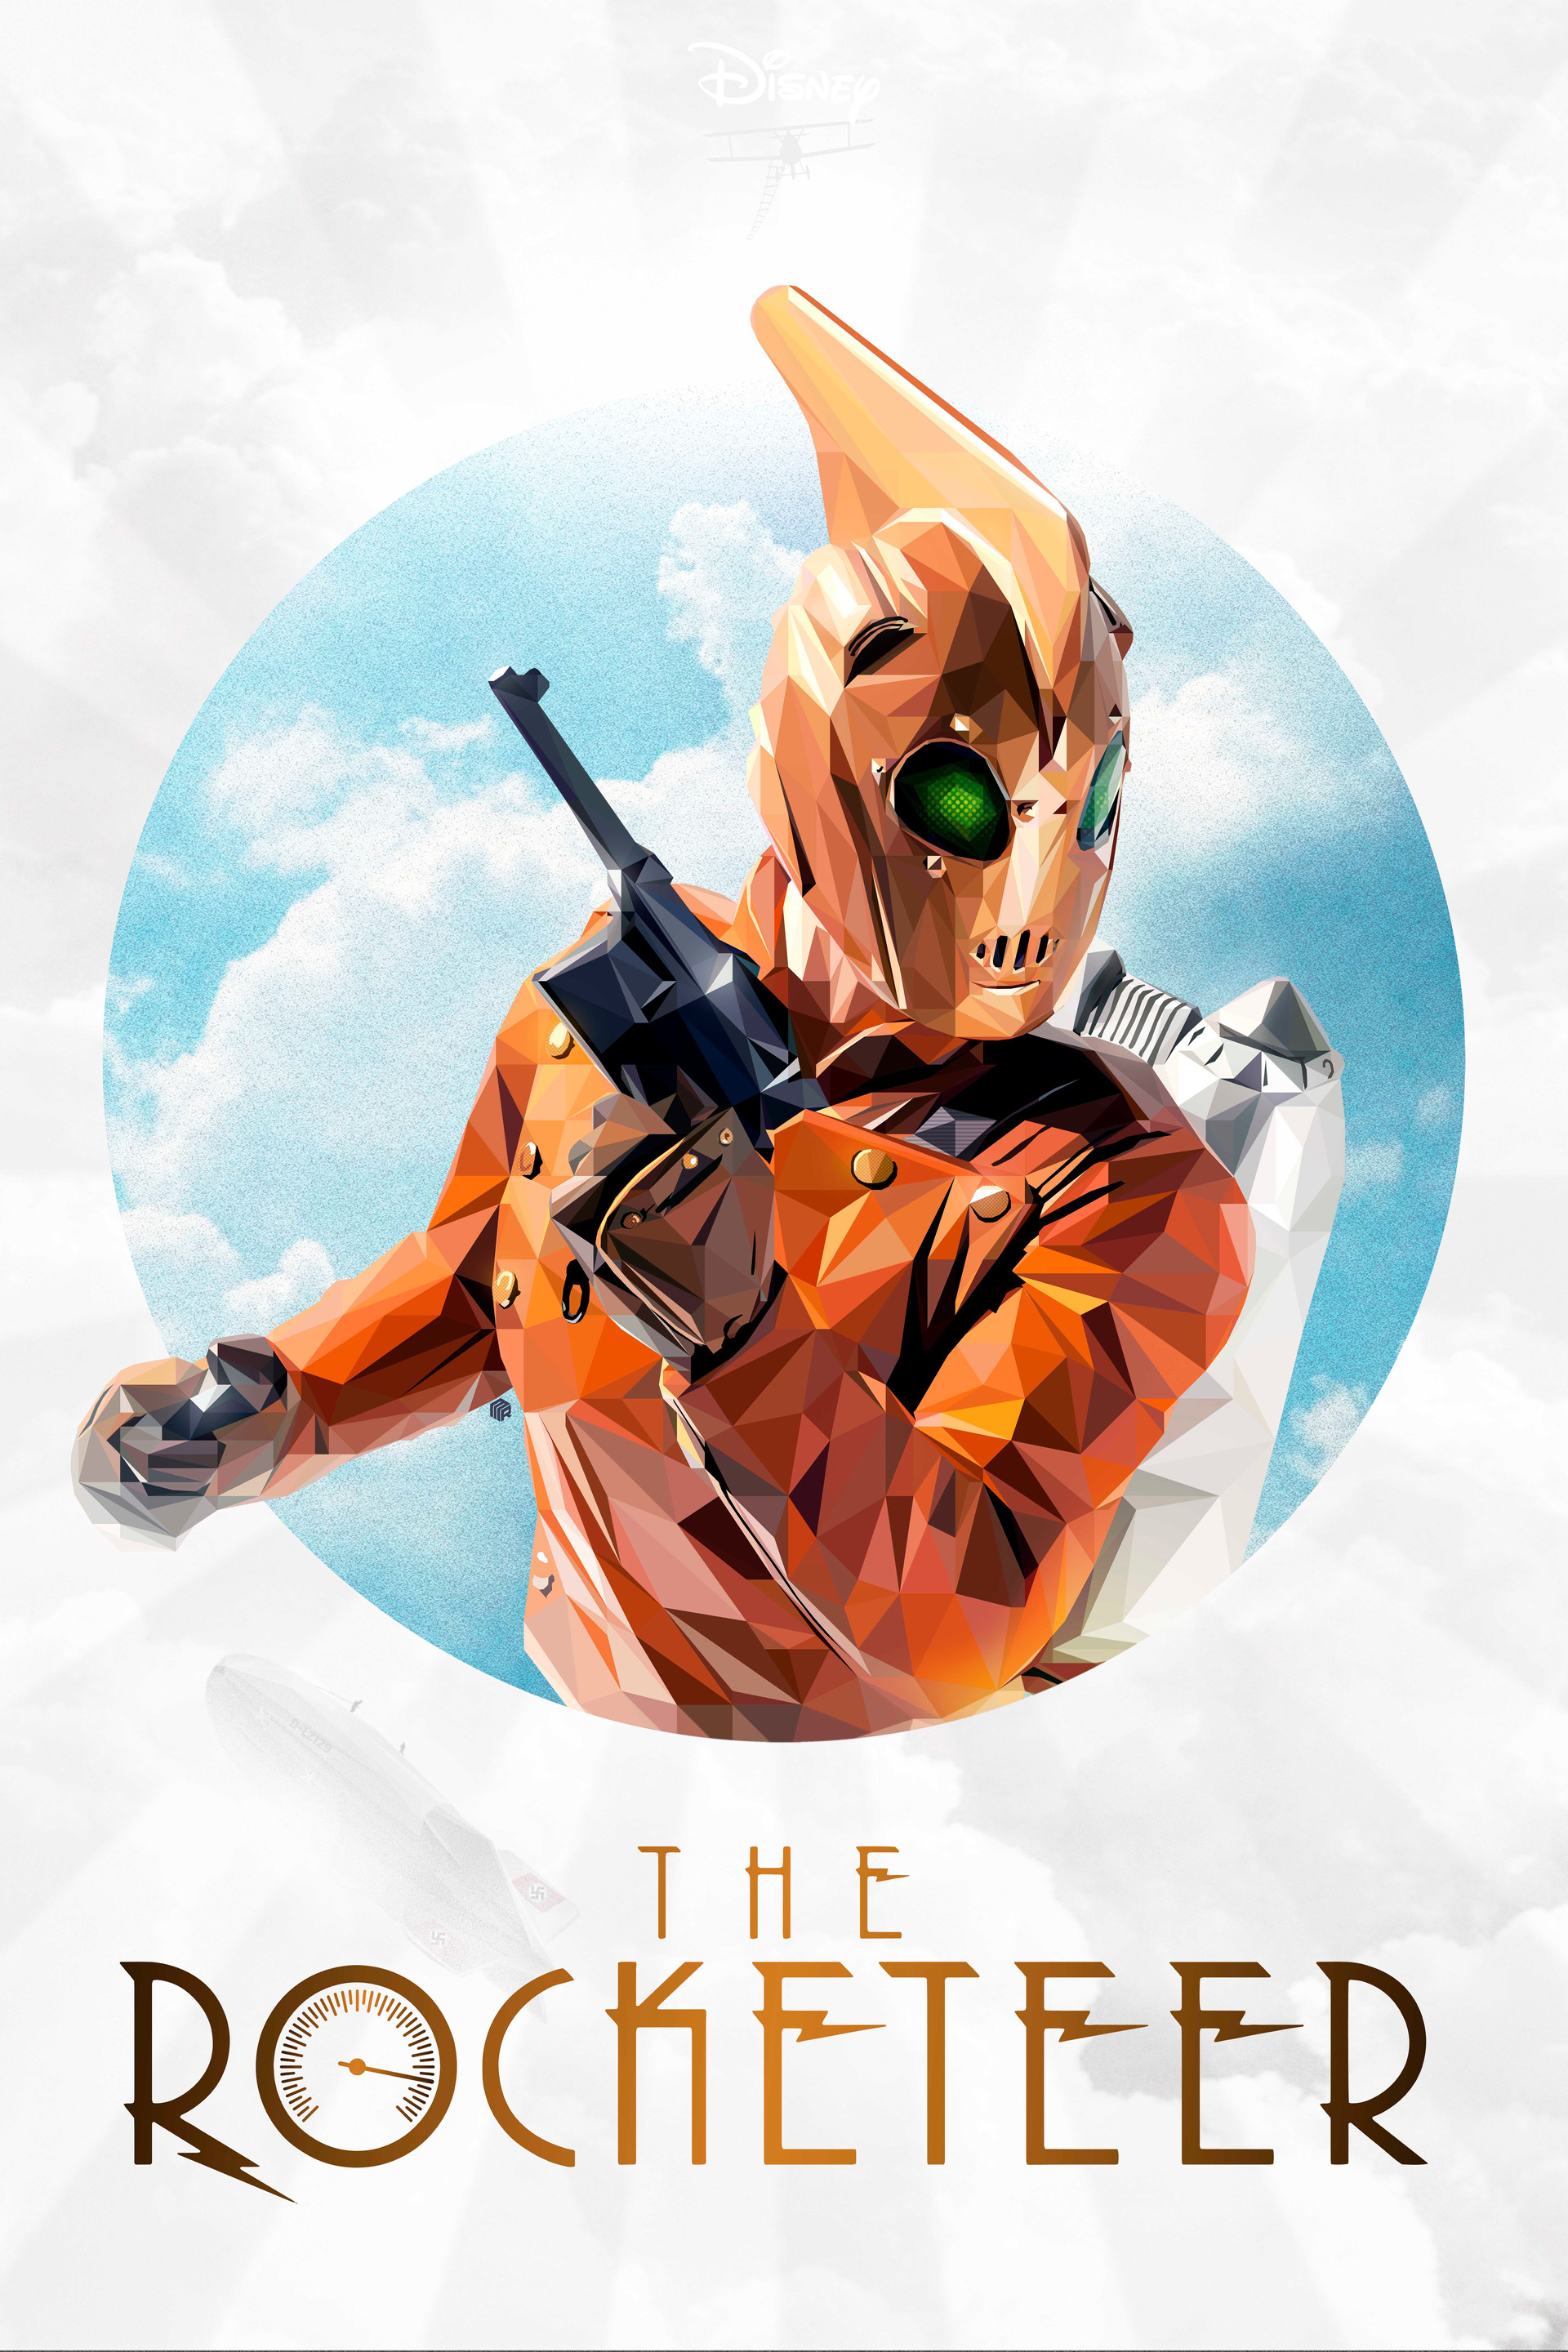 THE ROCKETEER 1